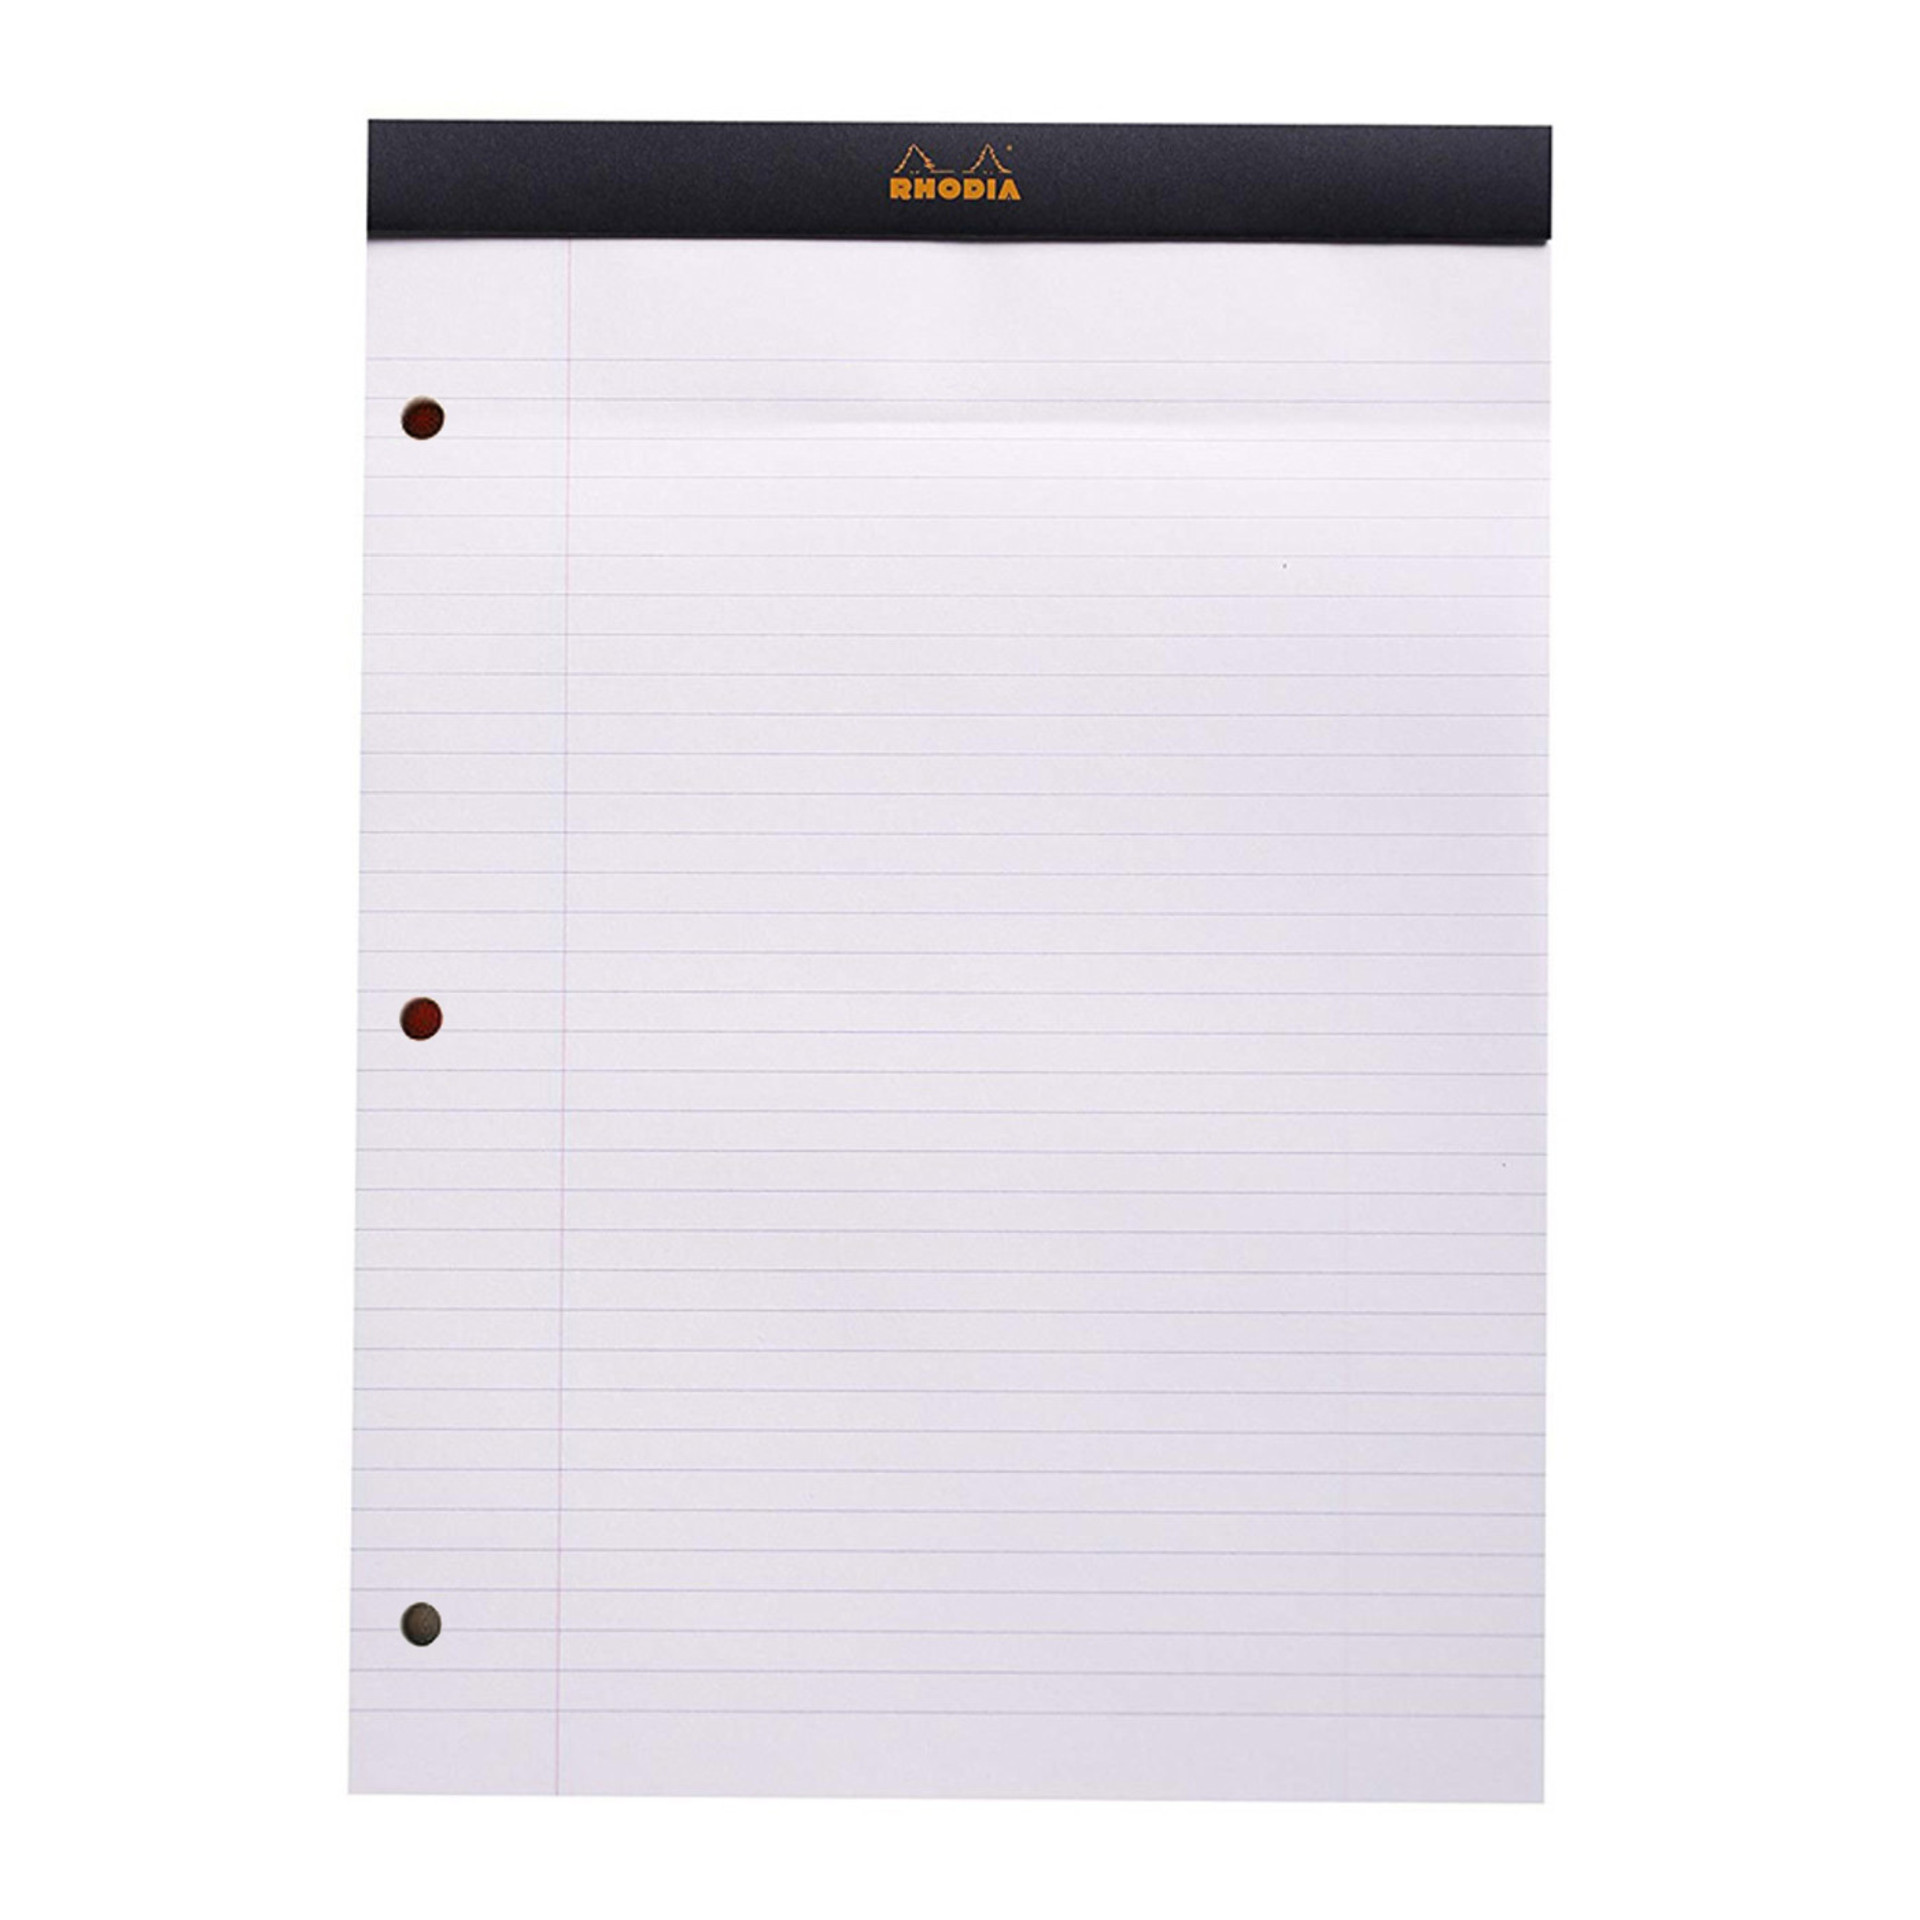 Rhodia Black Lined 3 Holes Top Stapled Pad